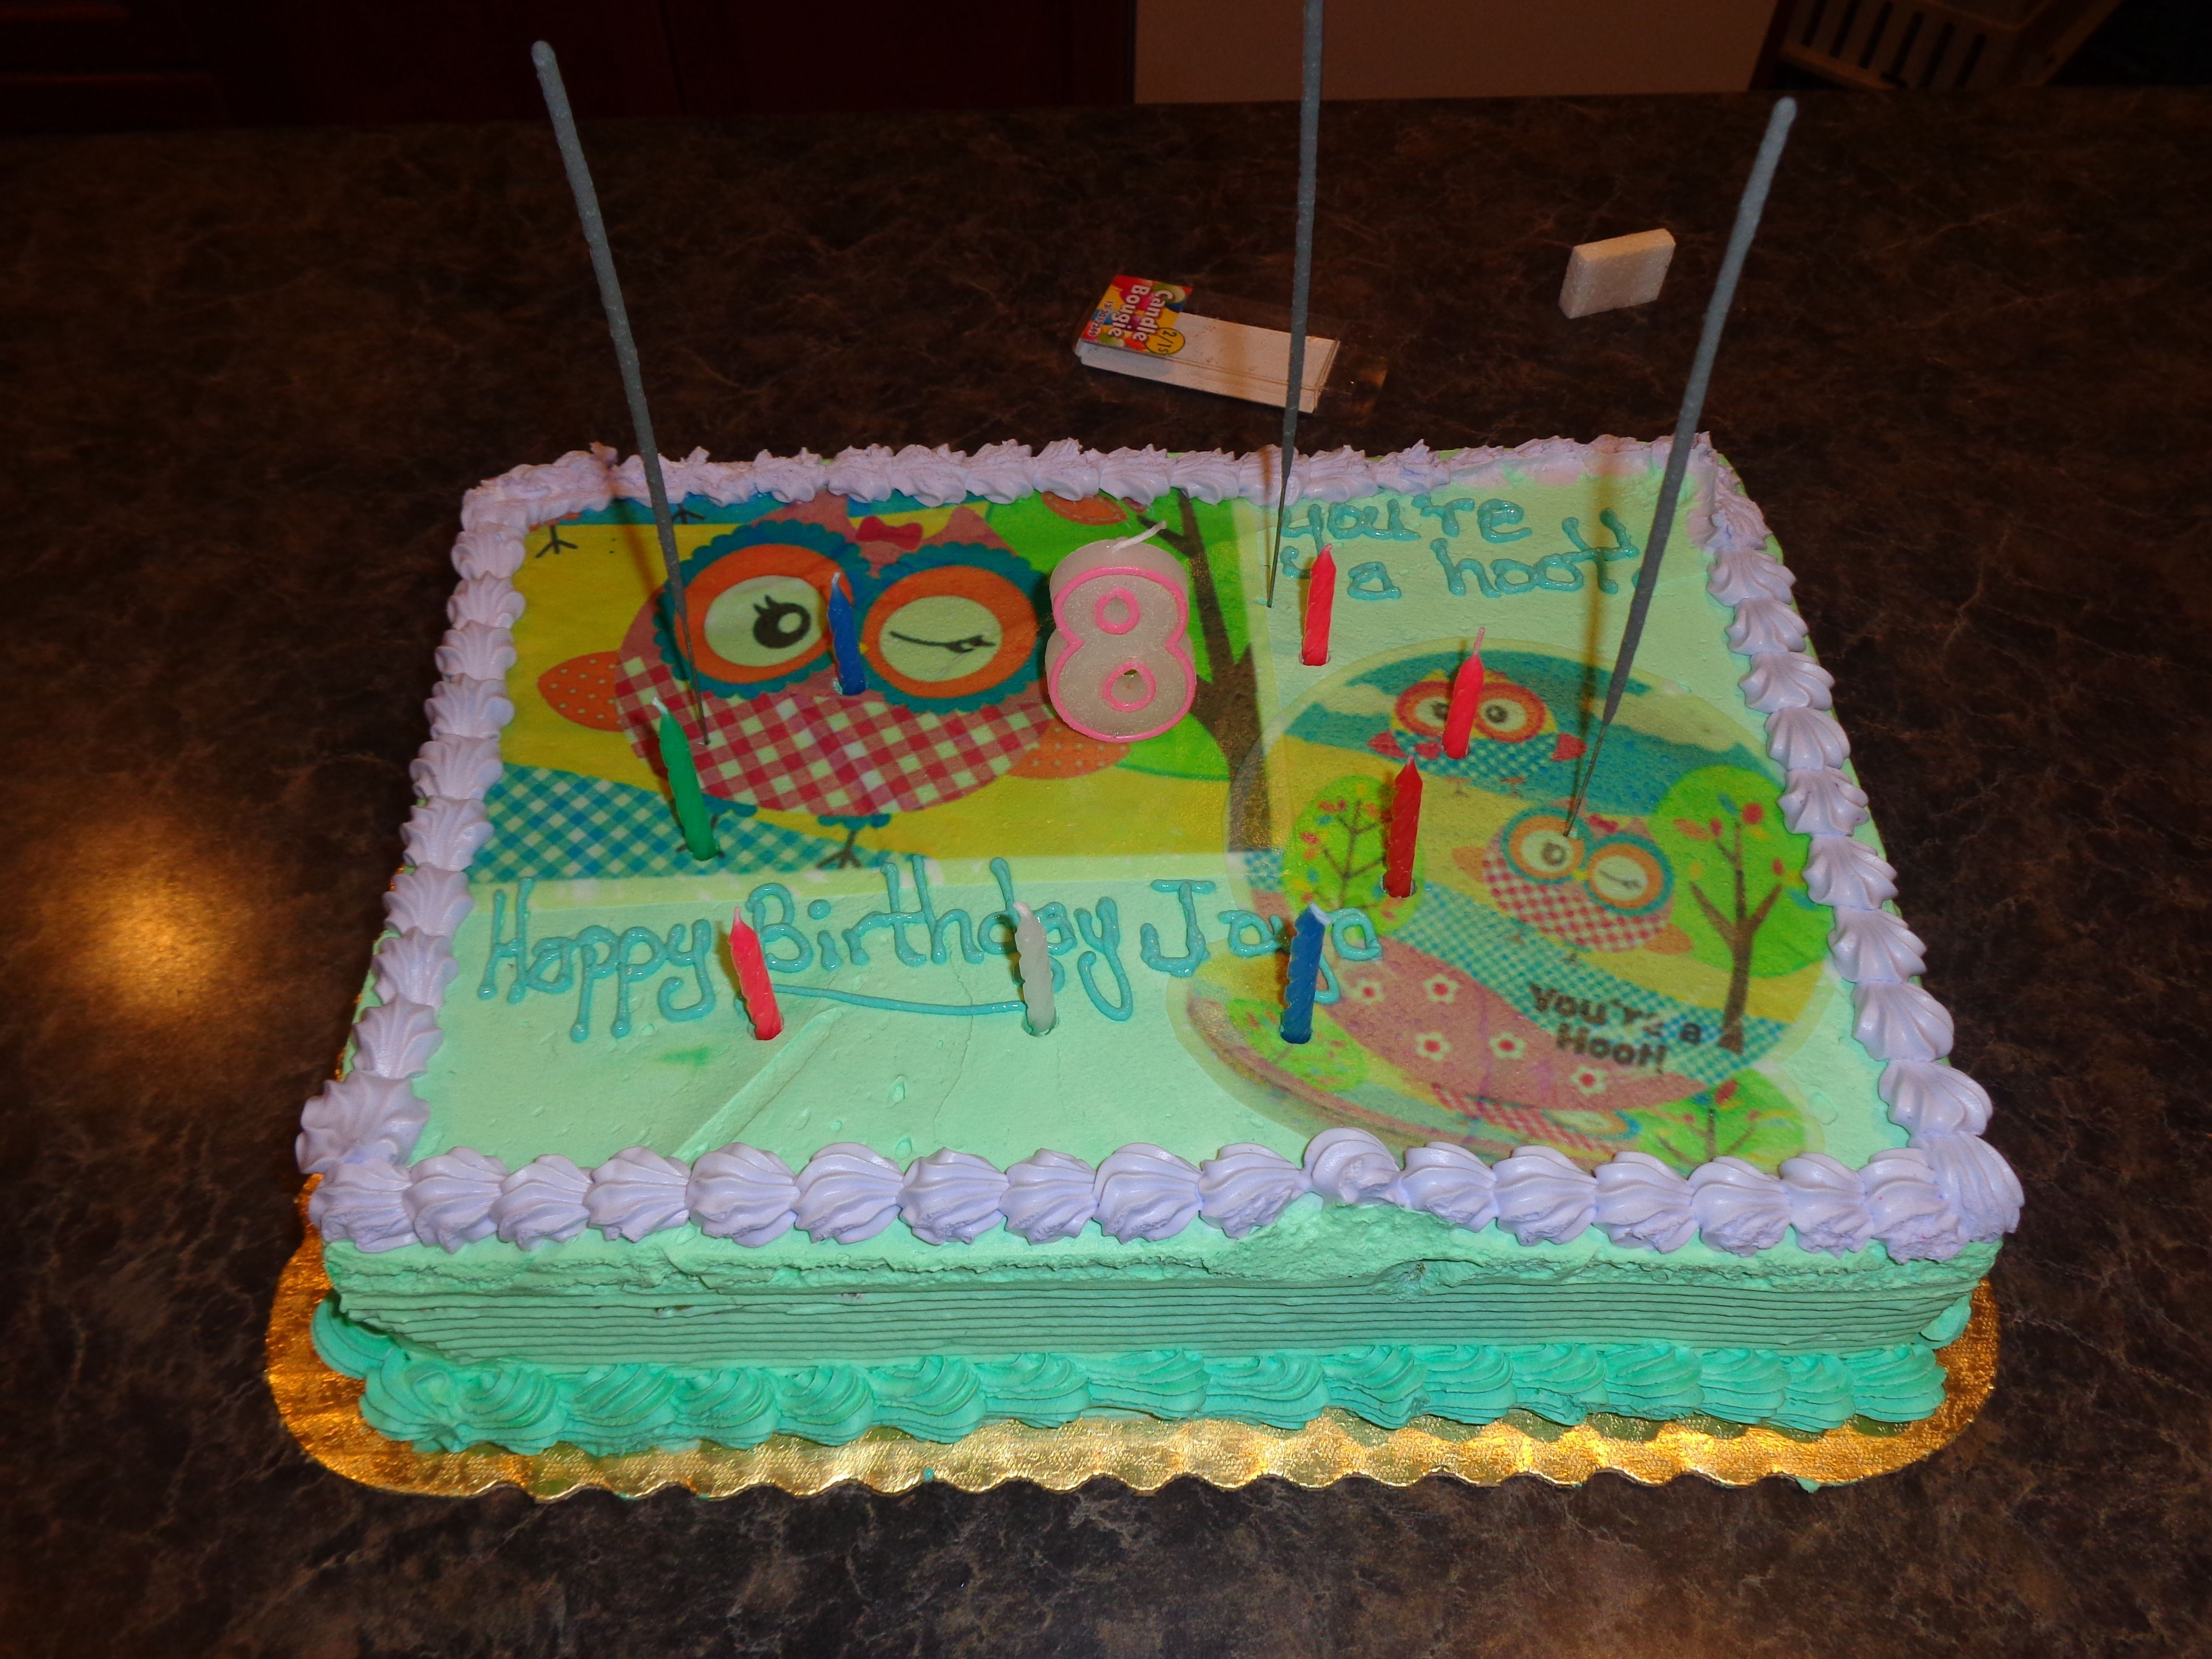 Edible Cake Image Owl : Owl themed cake with edible image. Owl Party Pinterest